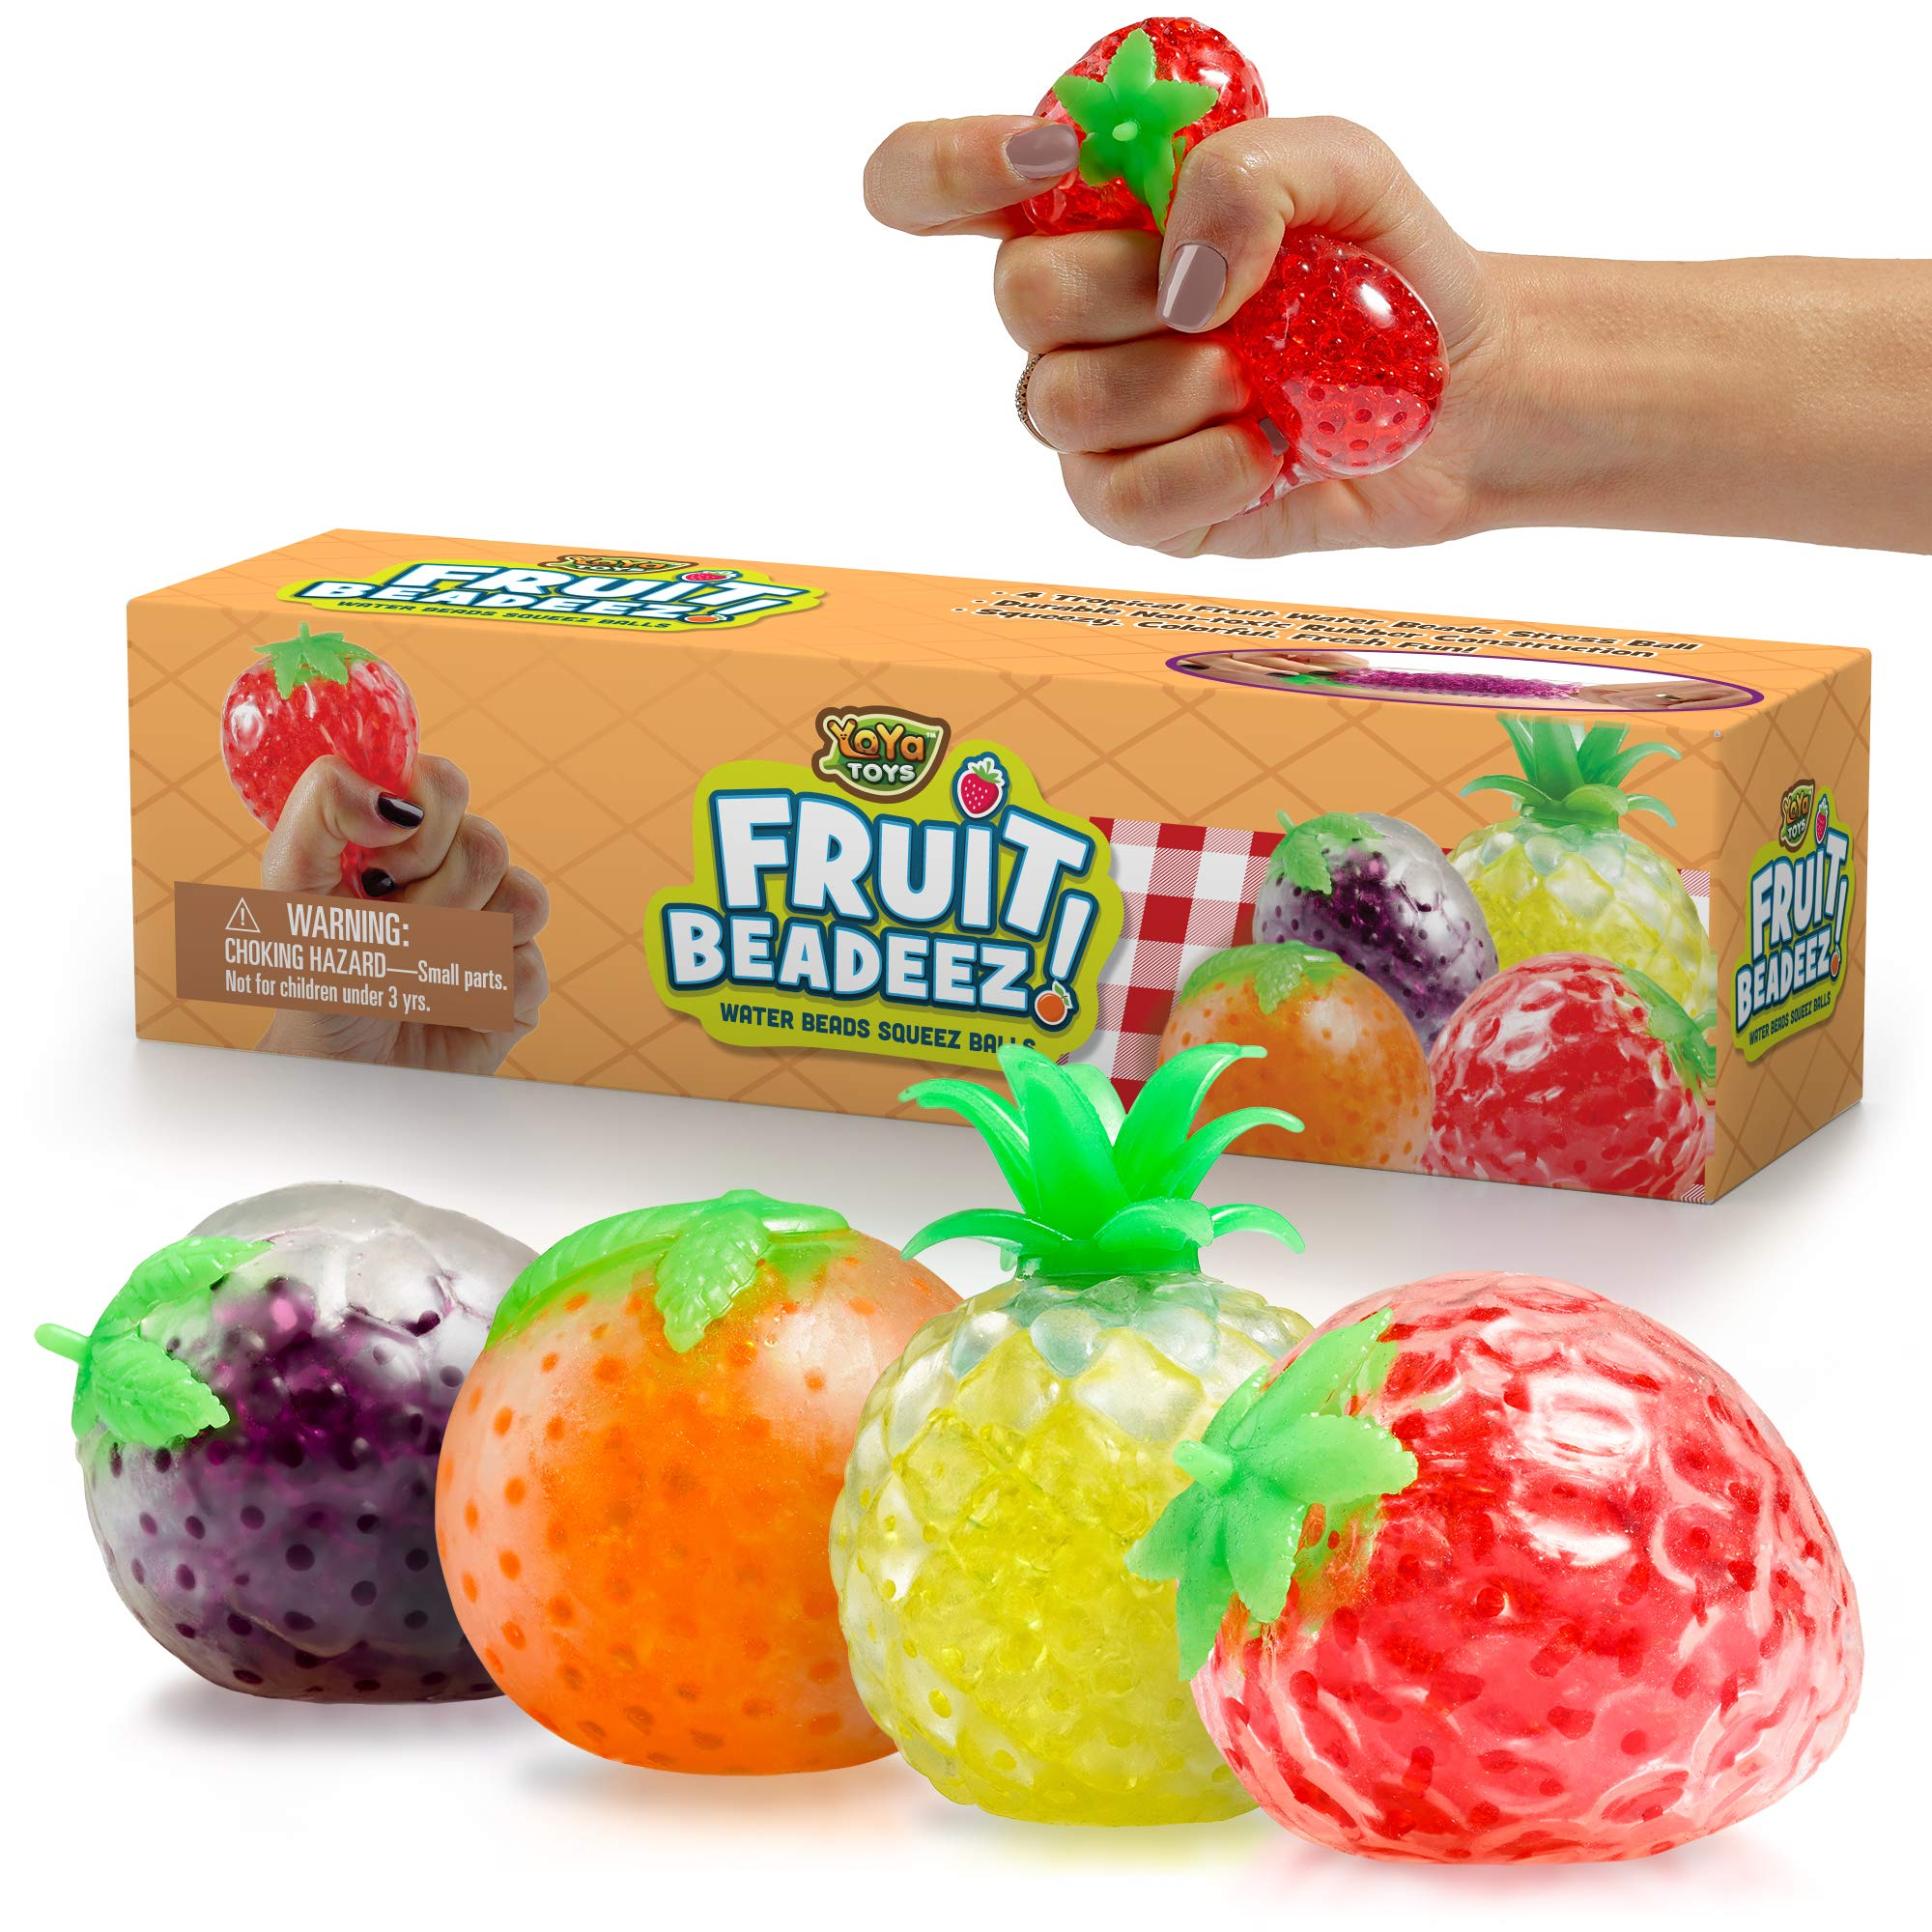 Beadeez! Squishy Fruit Stress Ball Toys (4-Pack) Tropical Designs Filled w/ Colorful, Squeezable Gel Water Beads | Promote Stress Relief, Calm Focus, Fun Play | Girls, Boys, Adults